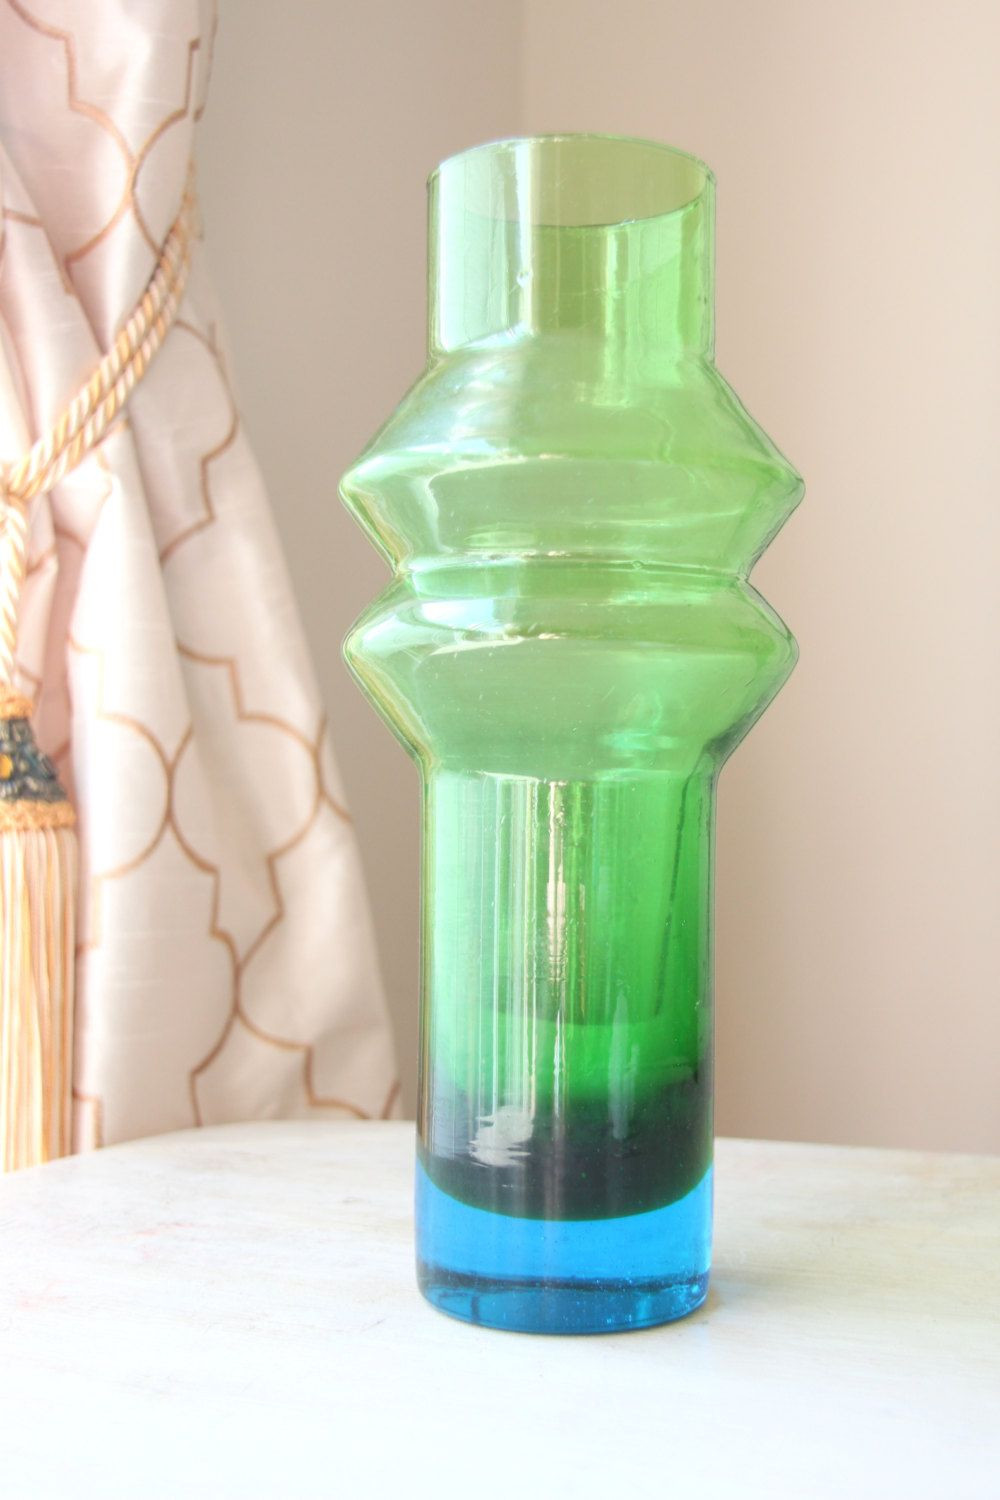 swedish glass vase of midcentury aseda bo borgstra¶m hooped glass vase 85 00 rare color within midcentury aseda bo borgstra¶m hooped glass vase 85 00 rare color swedish scandinavian green with blue cased glass mold blown vase wth 1227 by